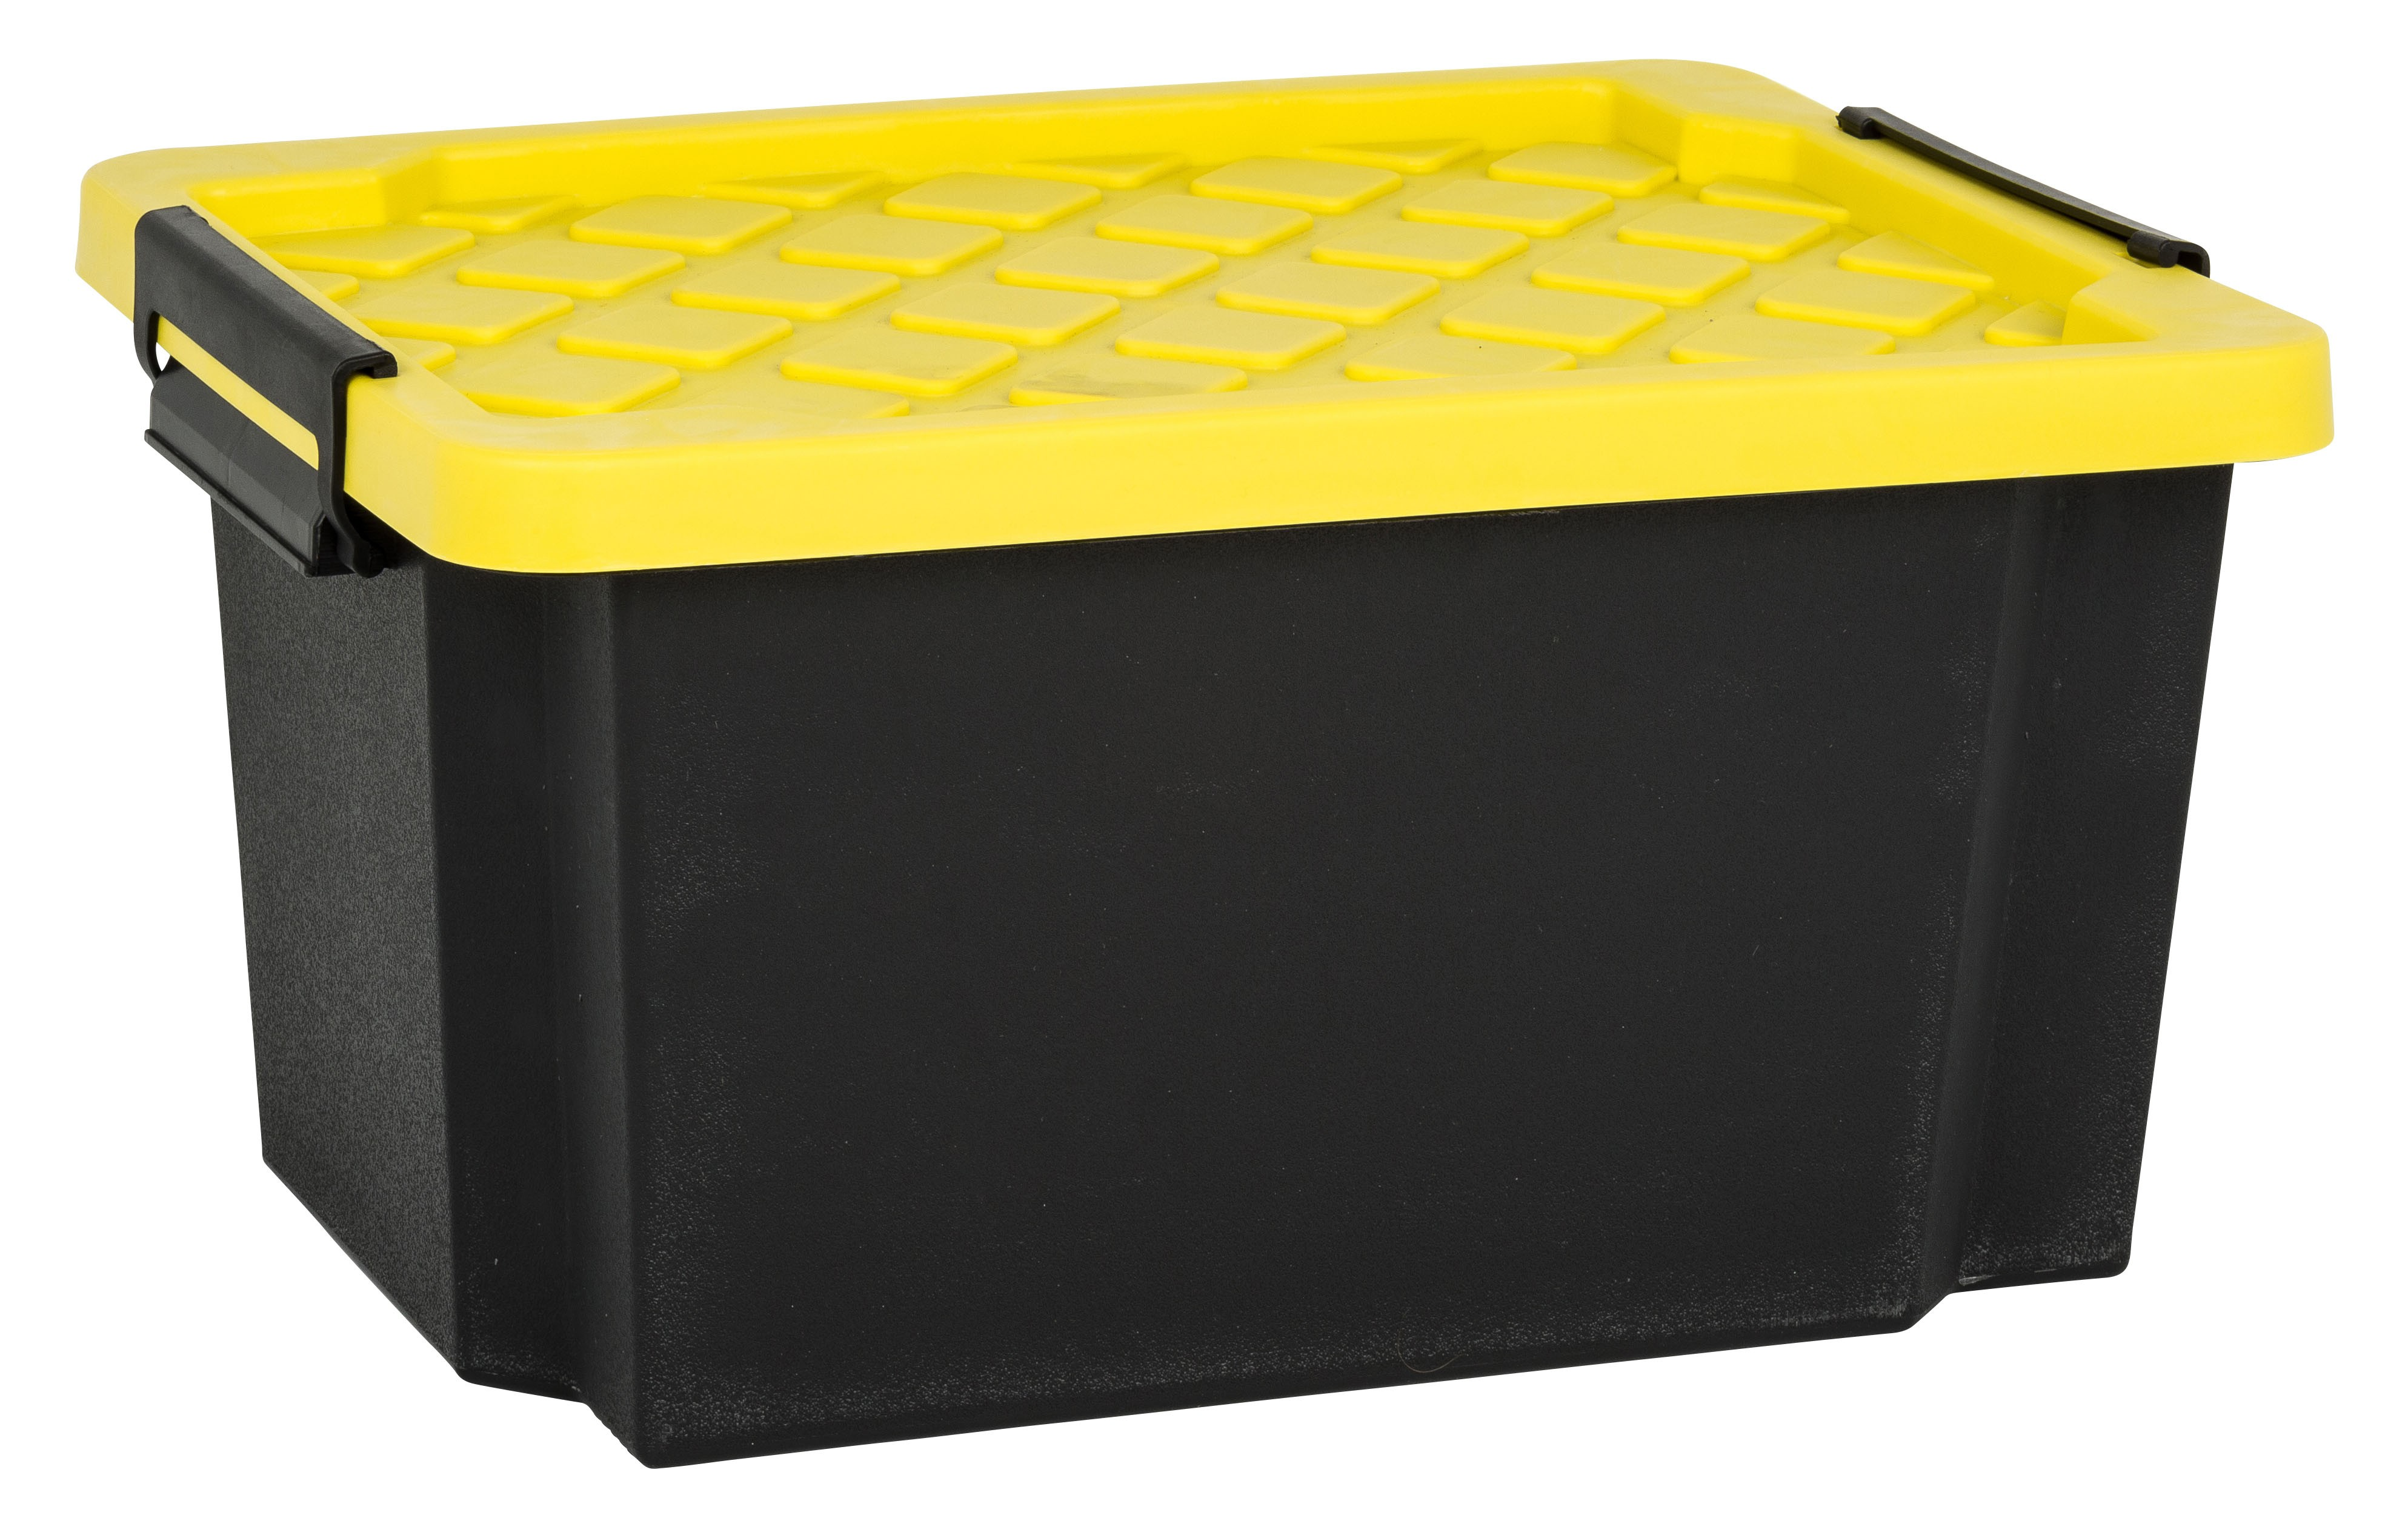 Trunk box 25l with lid from storage box for Cutlery storage with lid